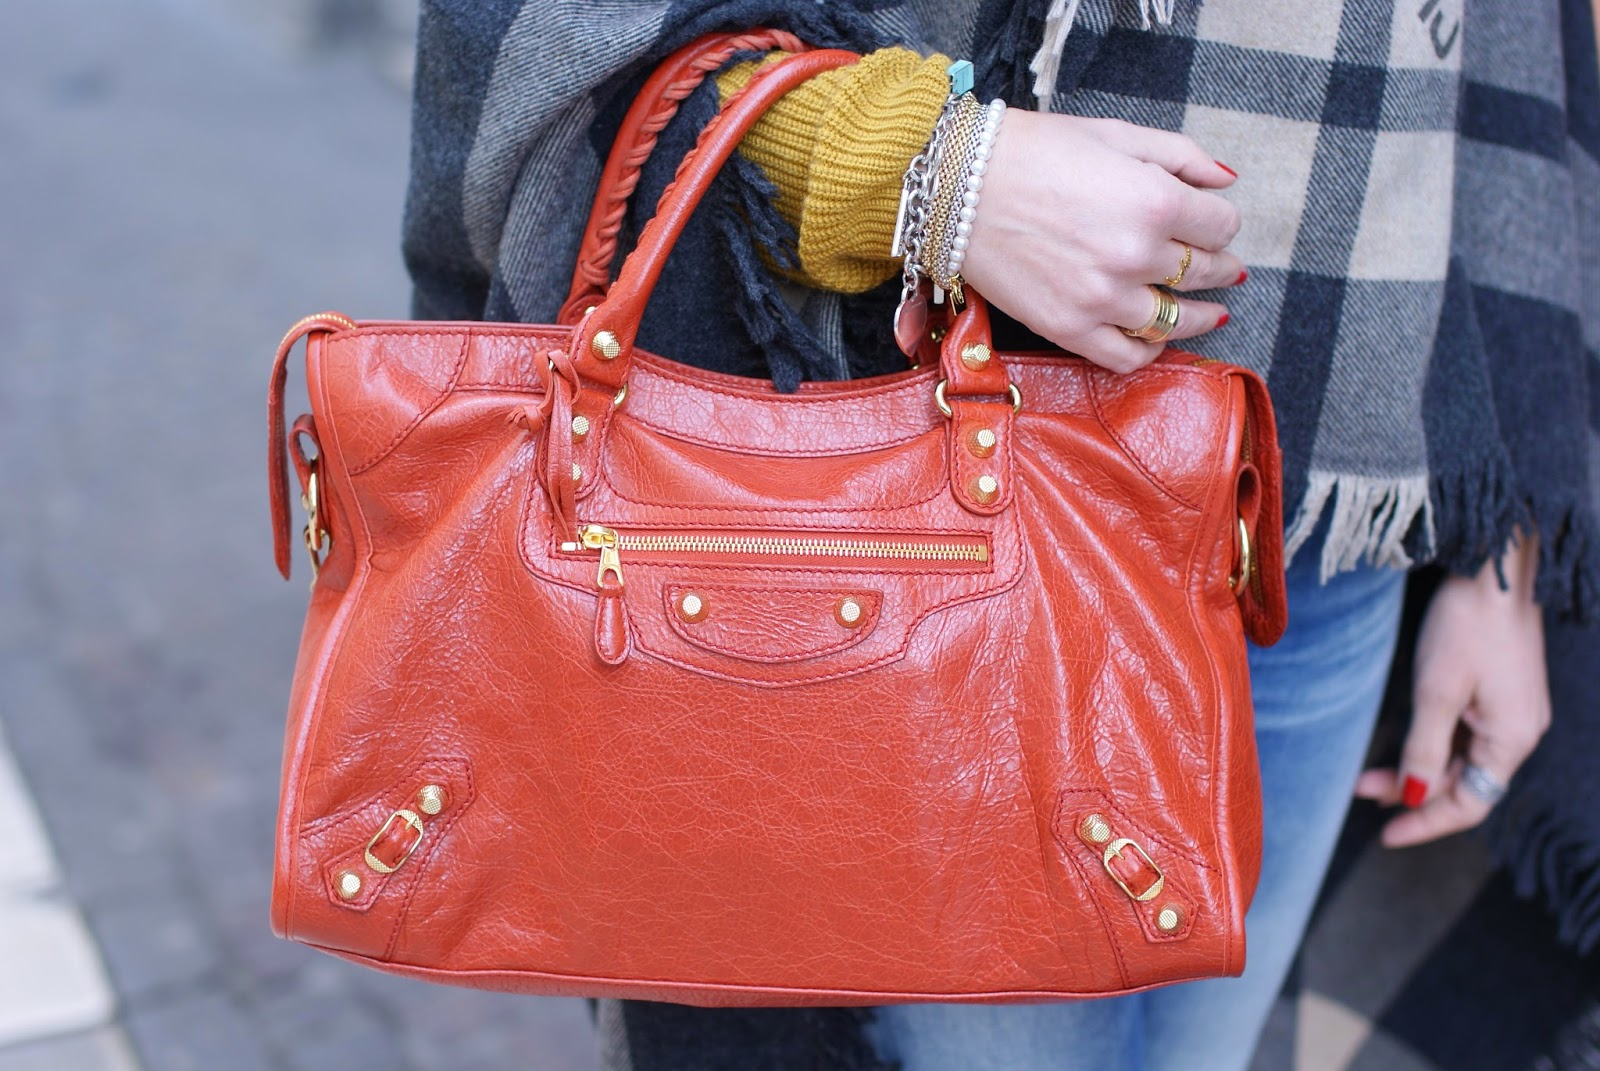 Balenciaga City bag in rouge ambre on Fashion and Cookies fashion blog